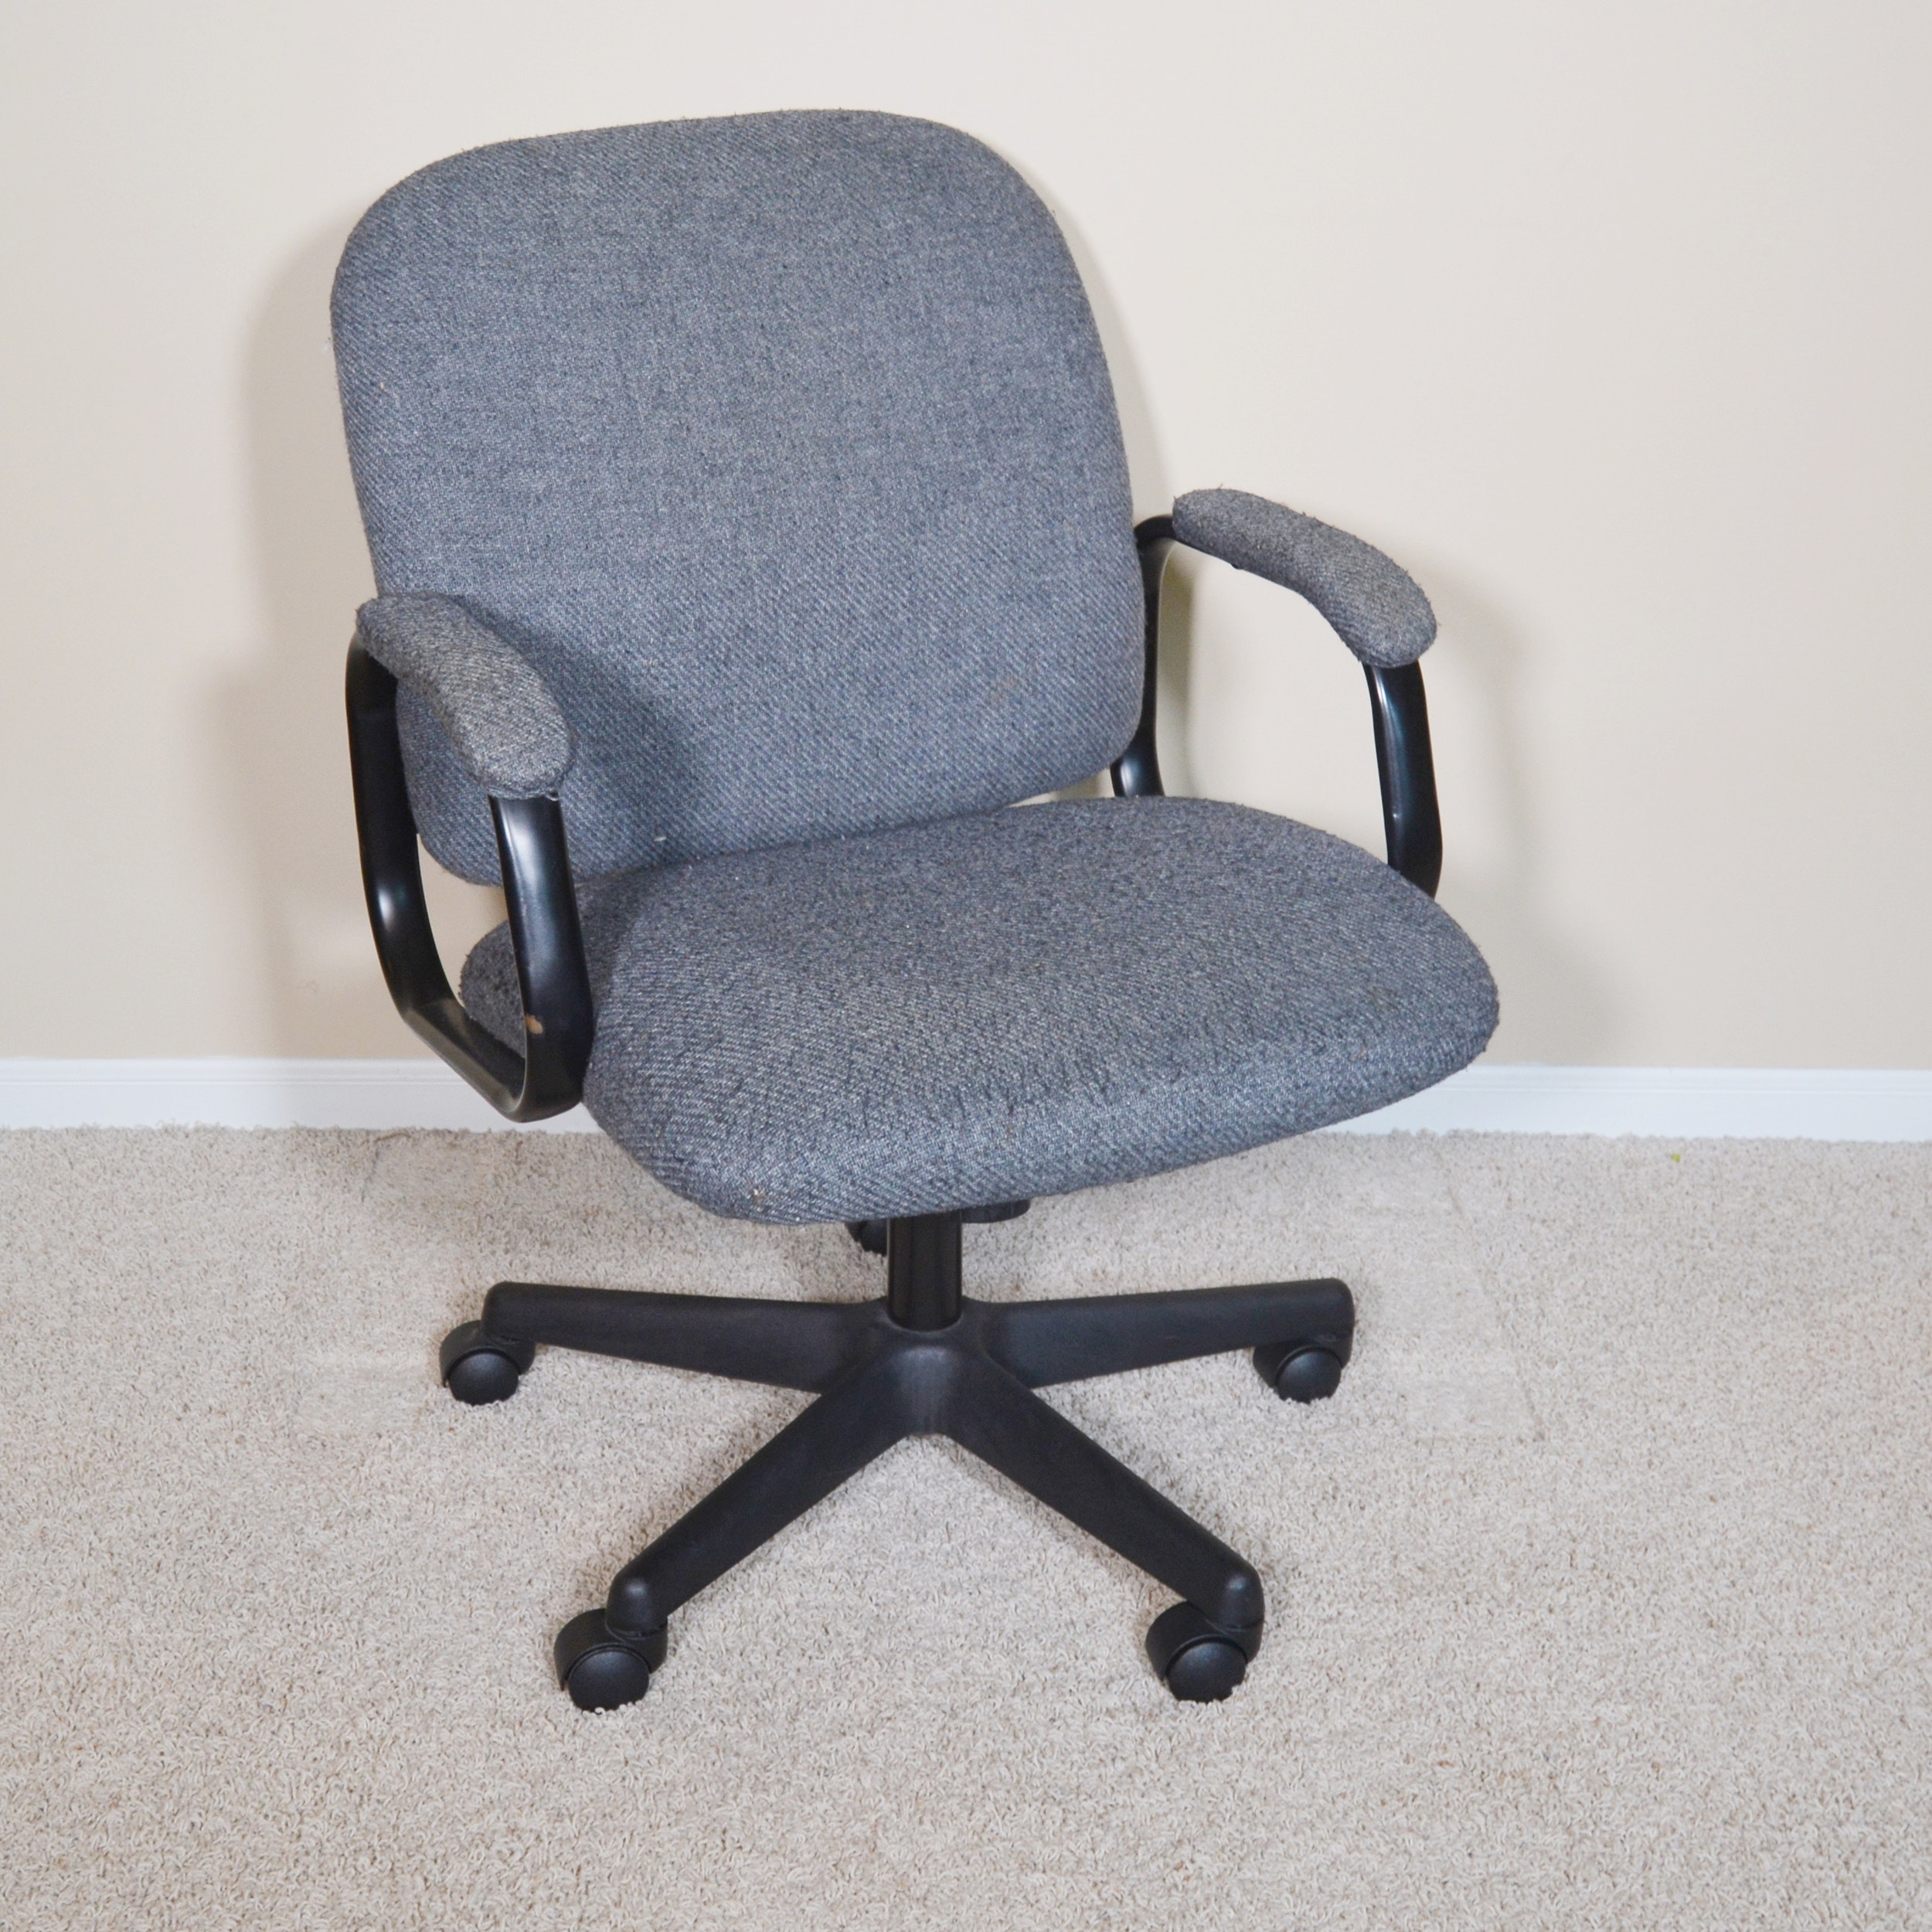 Upholstered Office Desk Chair